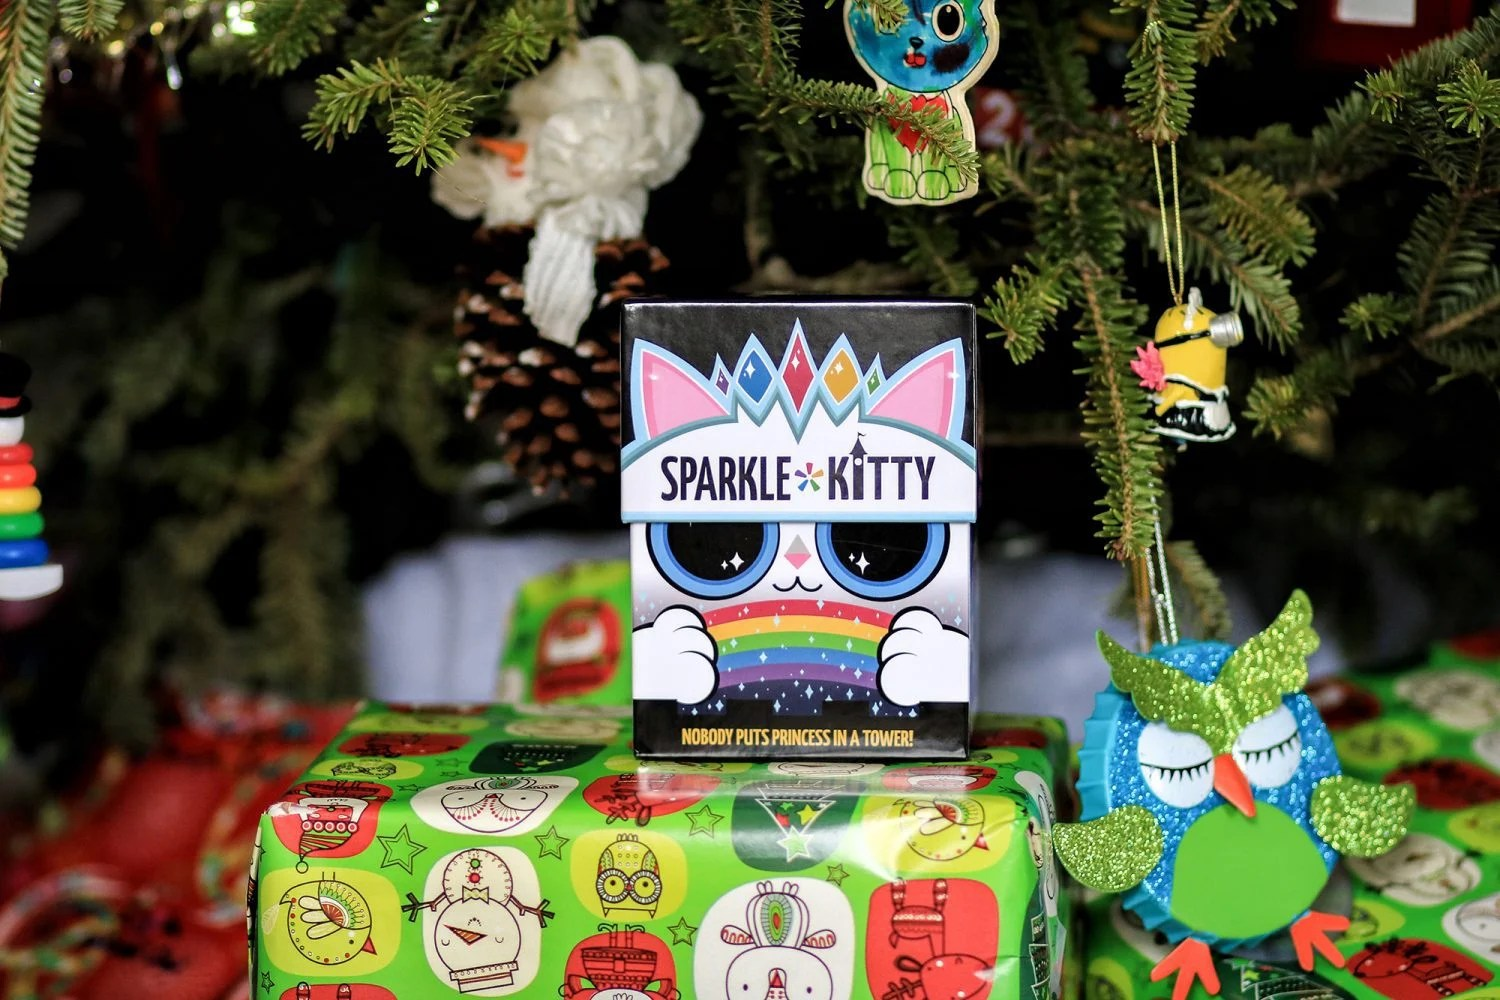 sparkle kitty, game, kids game, family game, christmas gift, family card game, card game, fun game, mom blog, mom blogger, mommy blog, mommy blogger, 2018, family blog, parenting blog, the super mom life, thesupermomlife, parenting blogger, family blogger